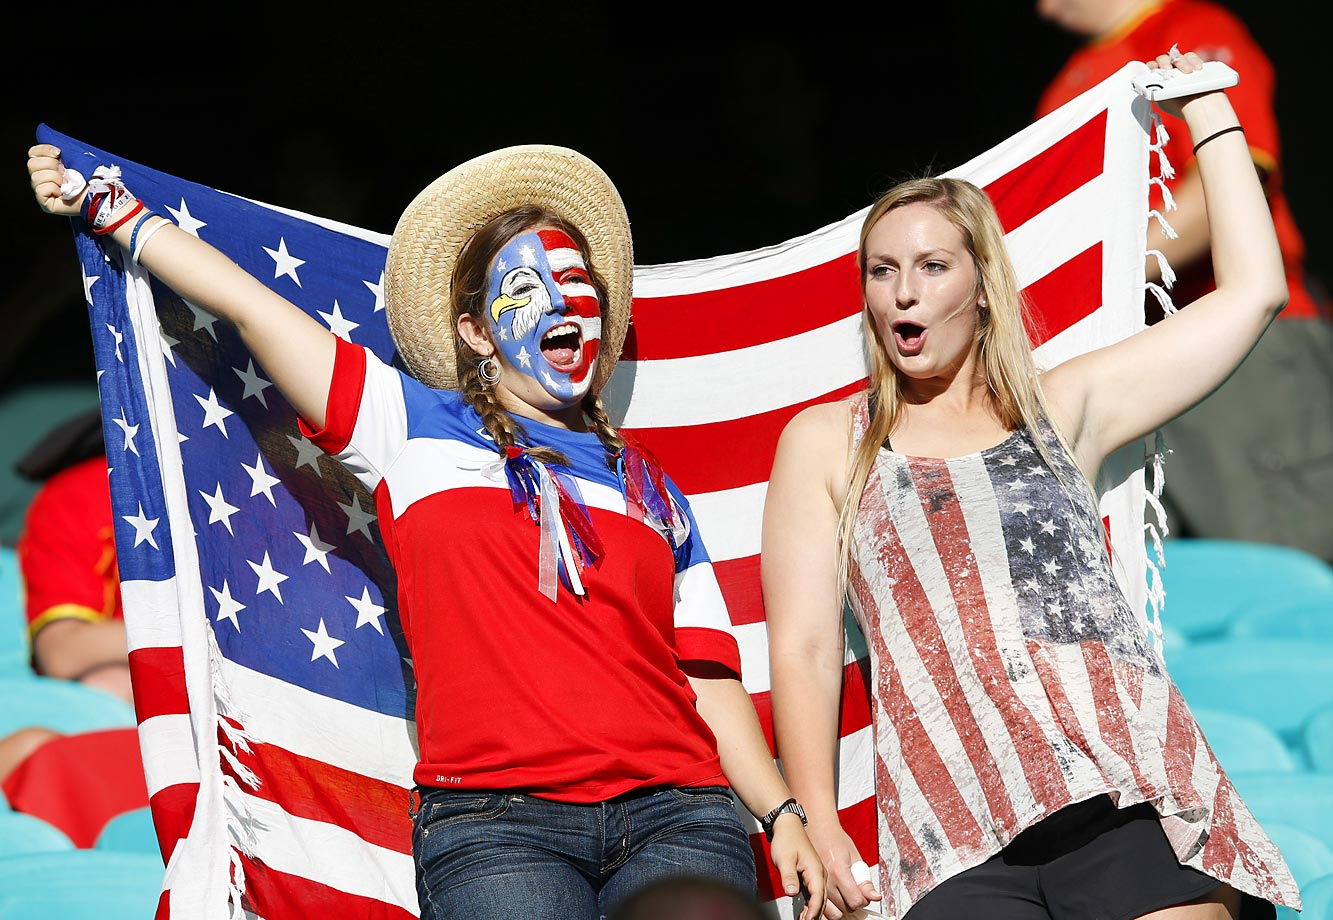 U.S. fans cheer during the game.